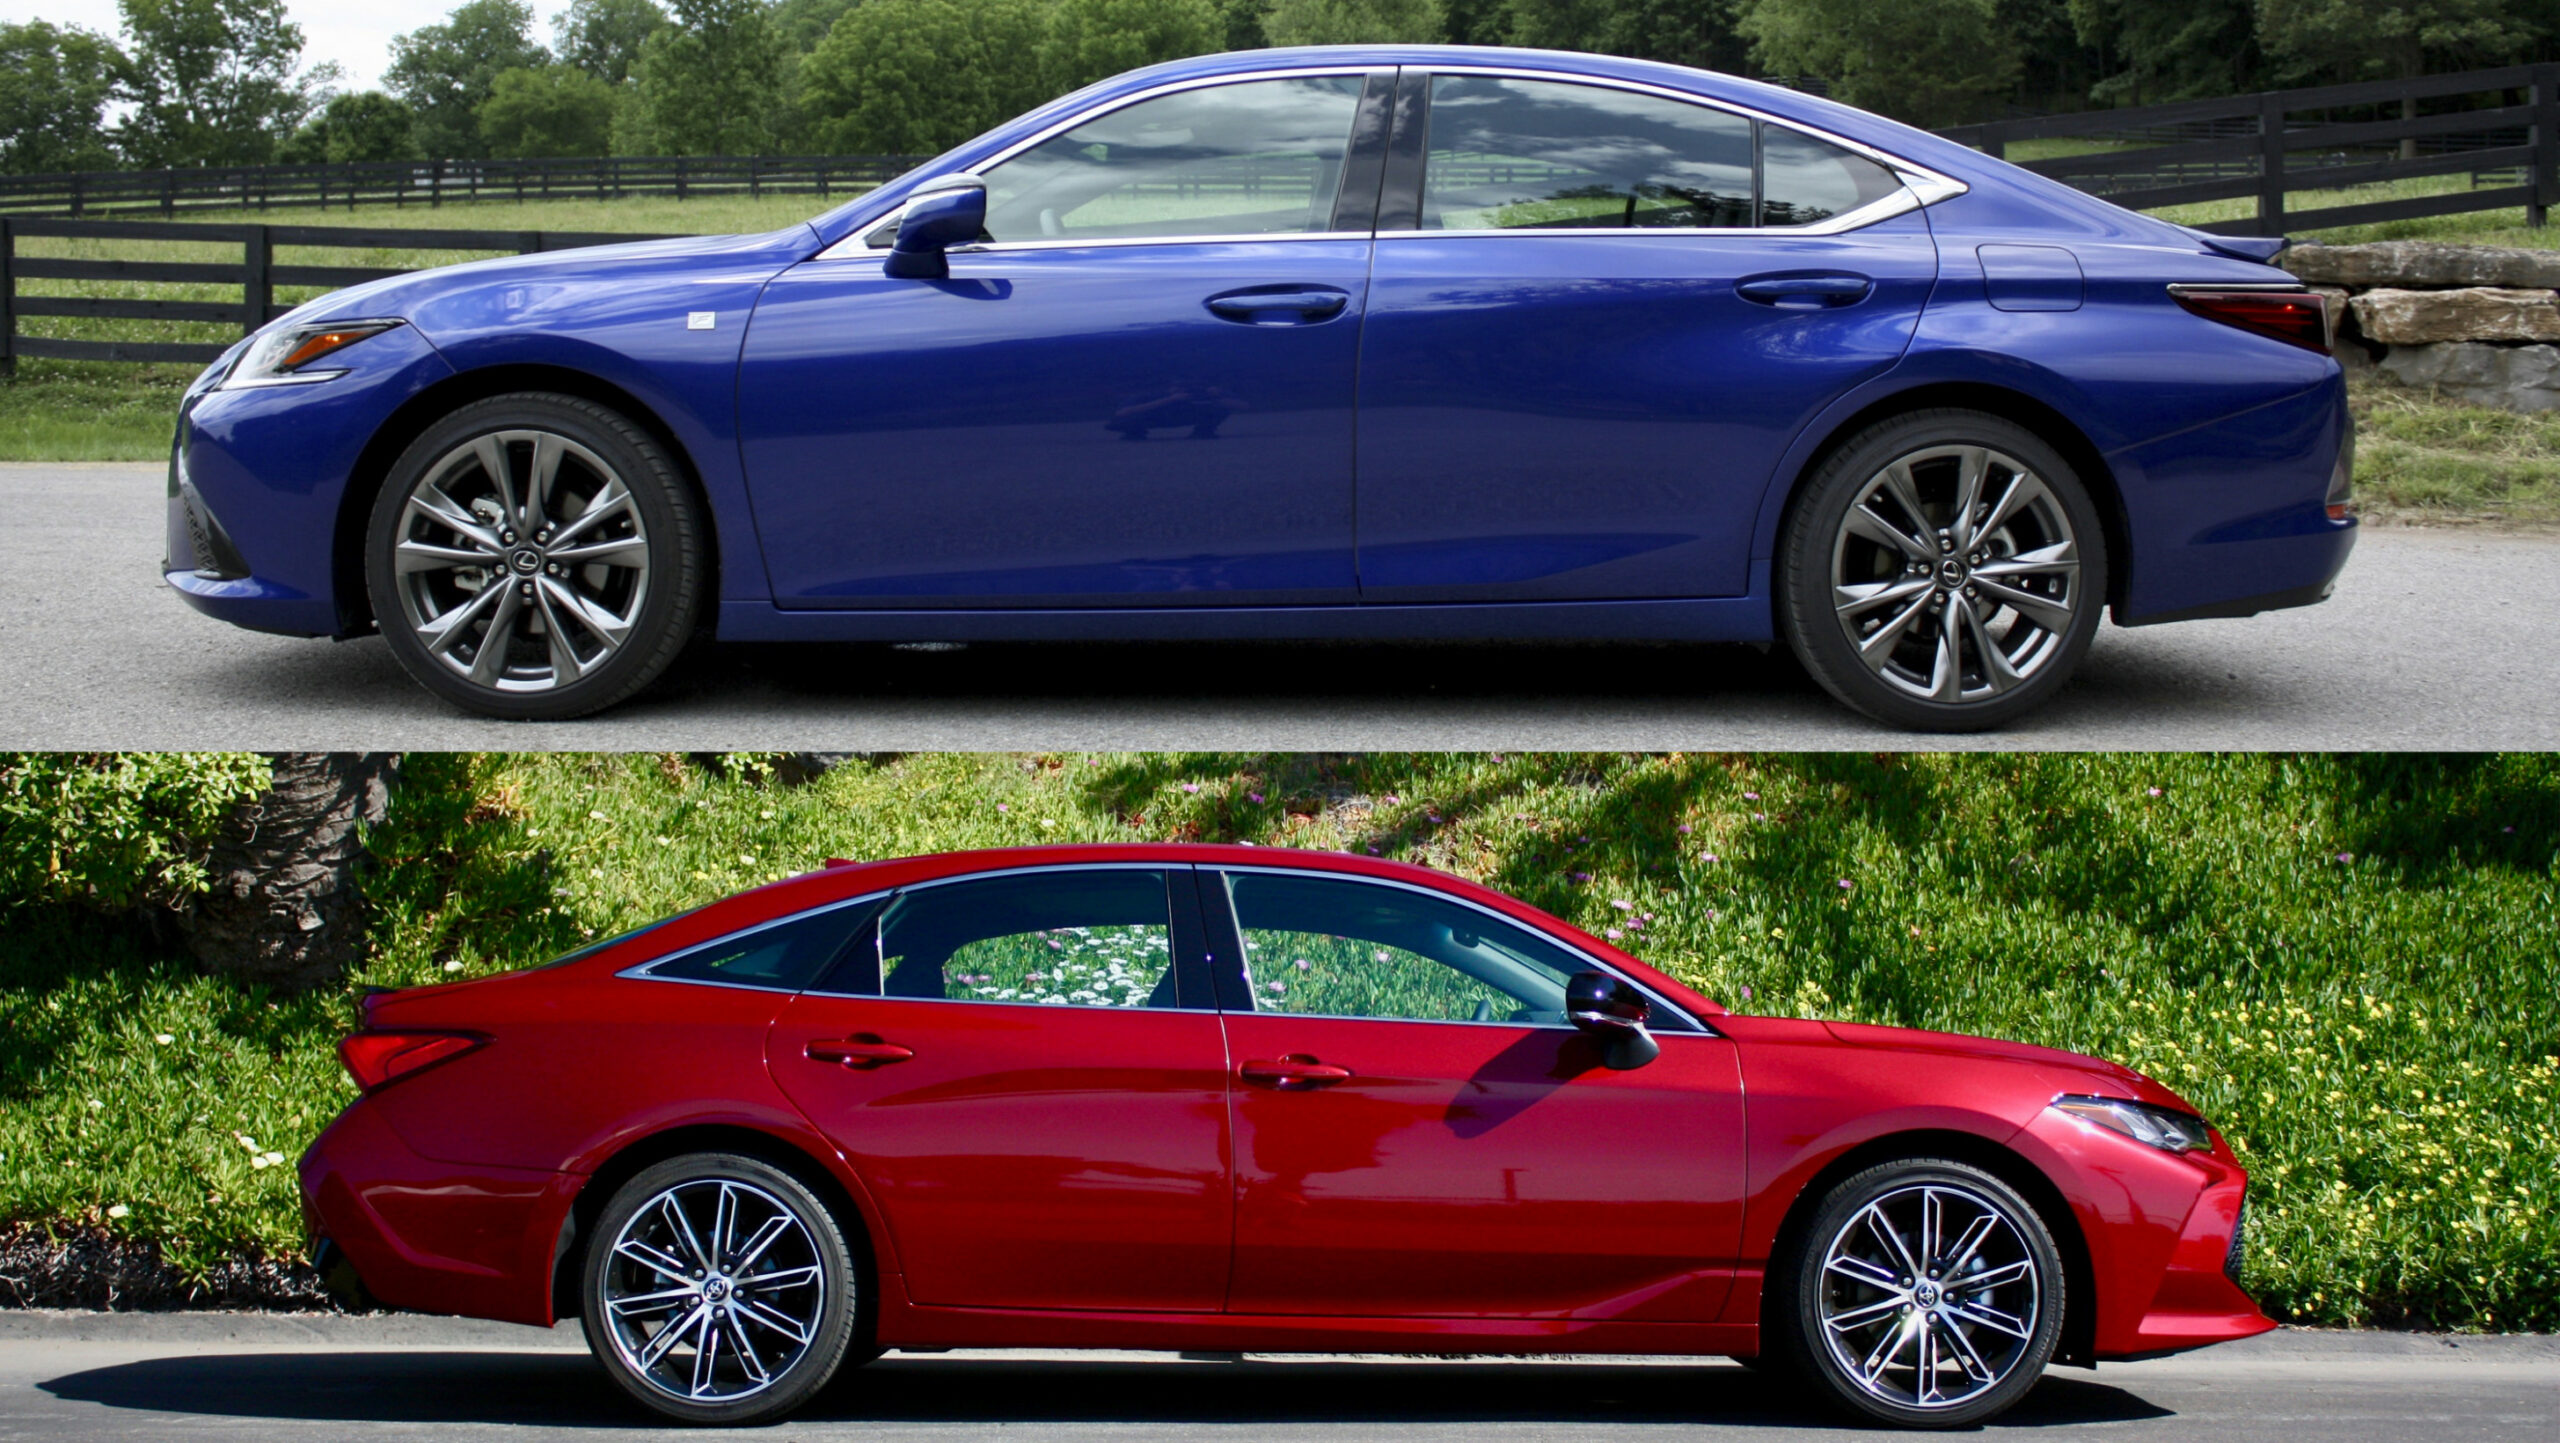 7 Lexus ES Versus 7 Toyota Avalon - Which Is Better? | Top Speed - lexus vs avalon 2020